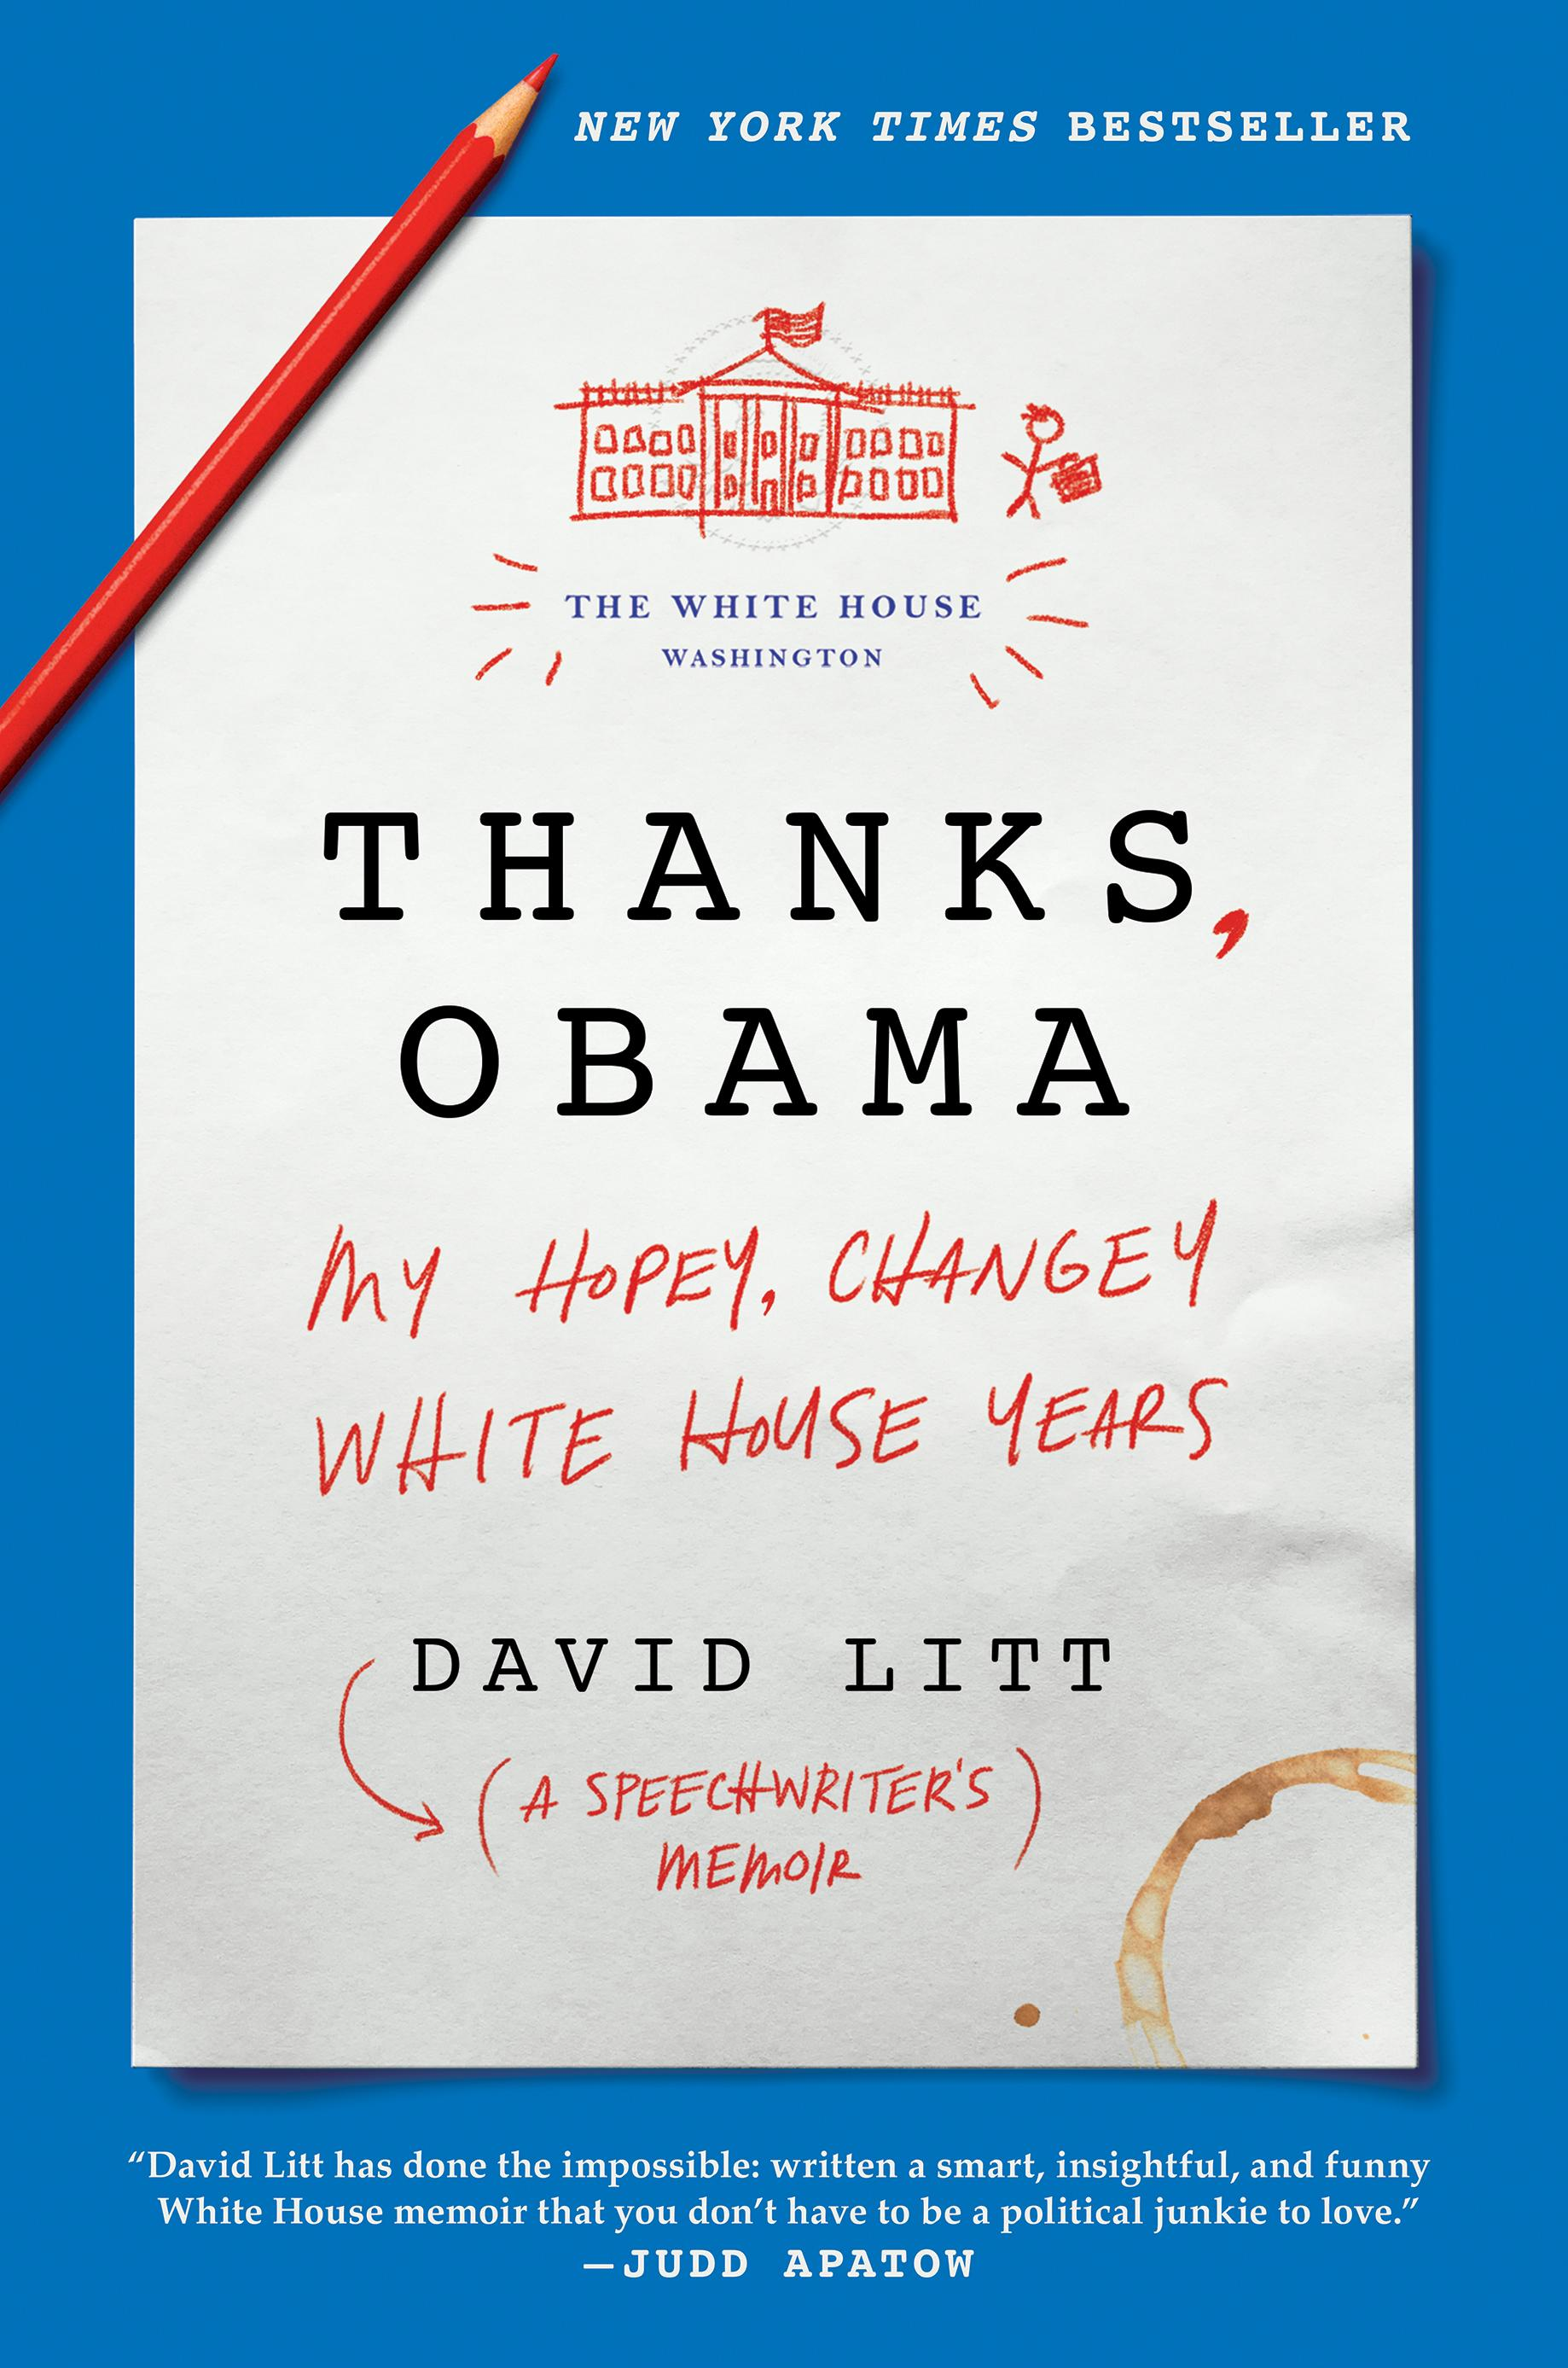 You know in D.C. when there's a new book out involving Obama, it's headed straight to the top of the must-read lists. Especially when it's written by the man behind four White House Correspondents Dinner speeches. Oh, and did we mention the author was only 24 when he somehow found himself as the speechwriter for the President of the United States? (Image: Courtesy HarperCollins)